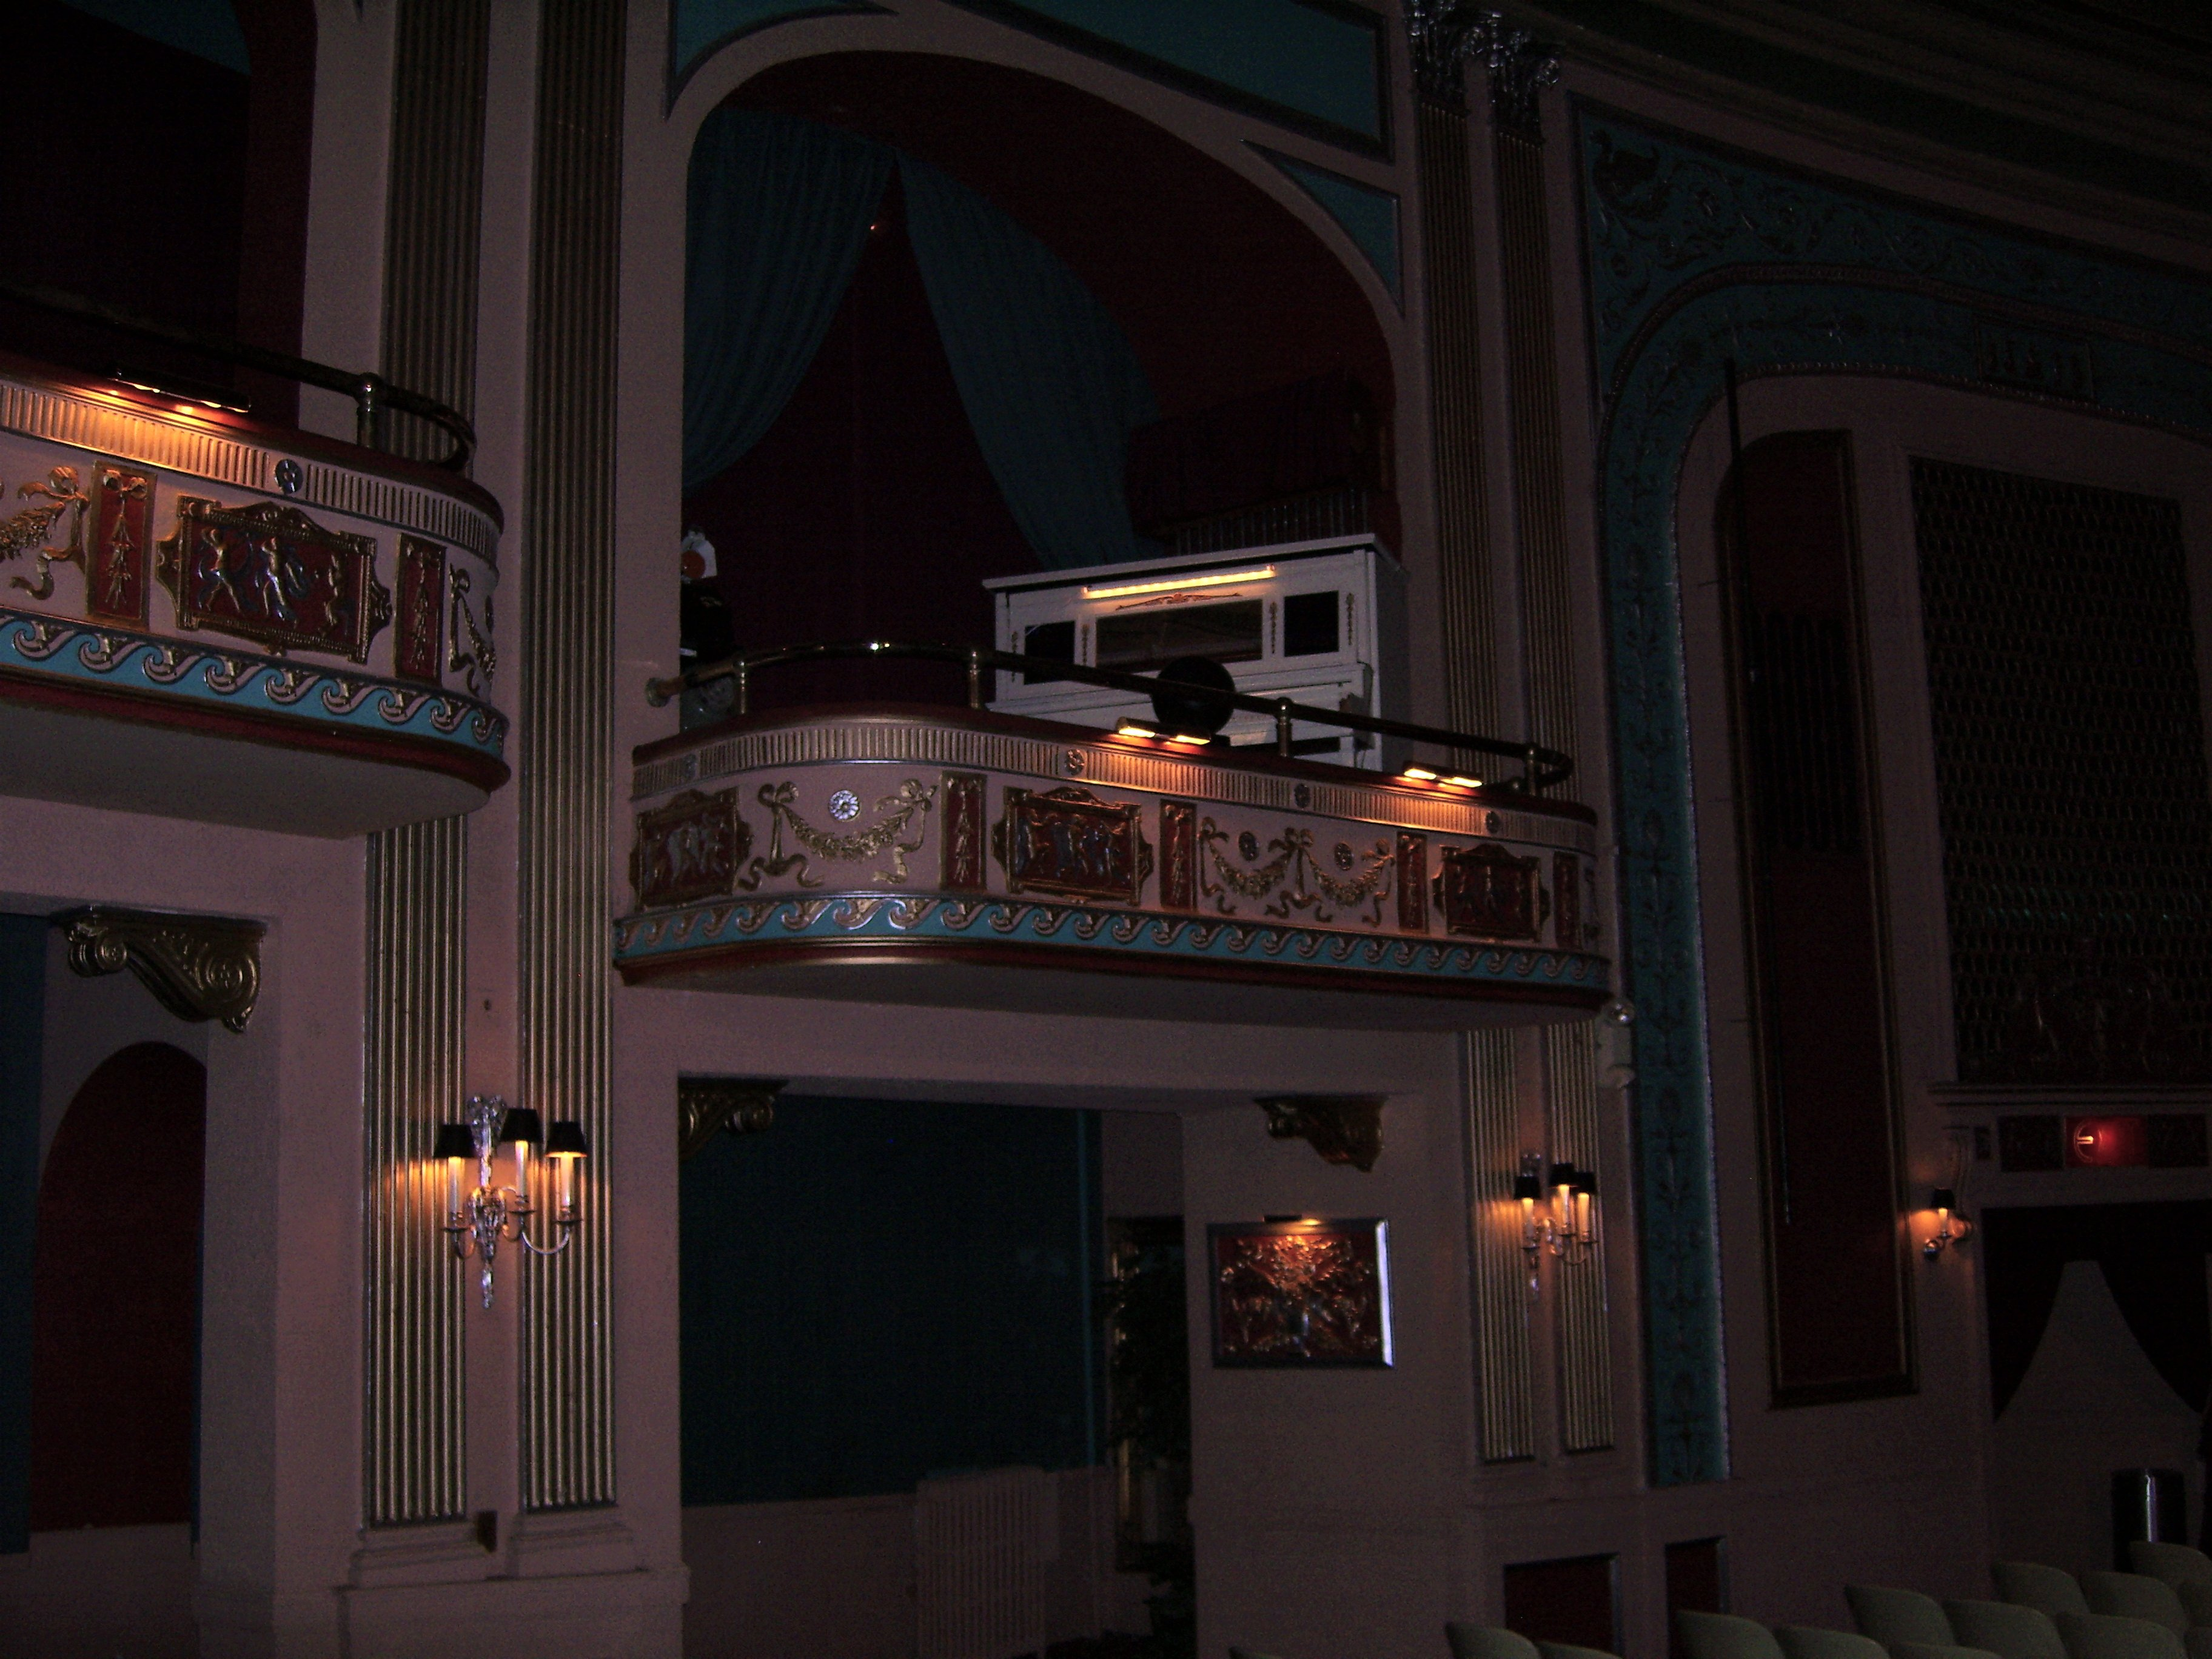 Click here to download a 3648 x 2736 JPG image showing the Upright Piano of the Lafayette Theatre.